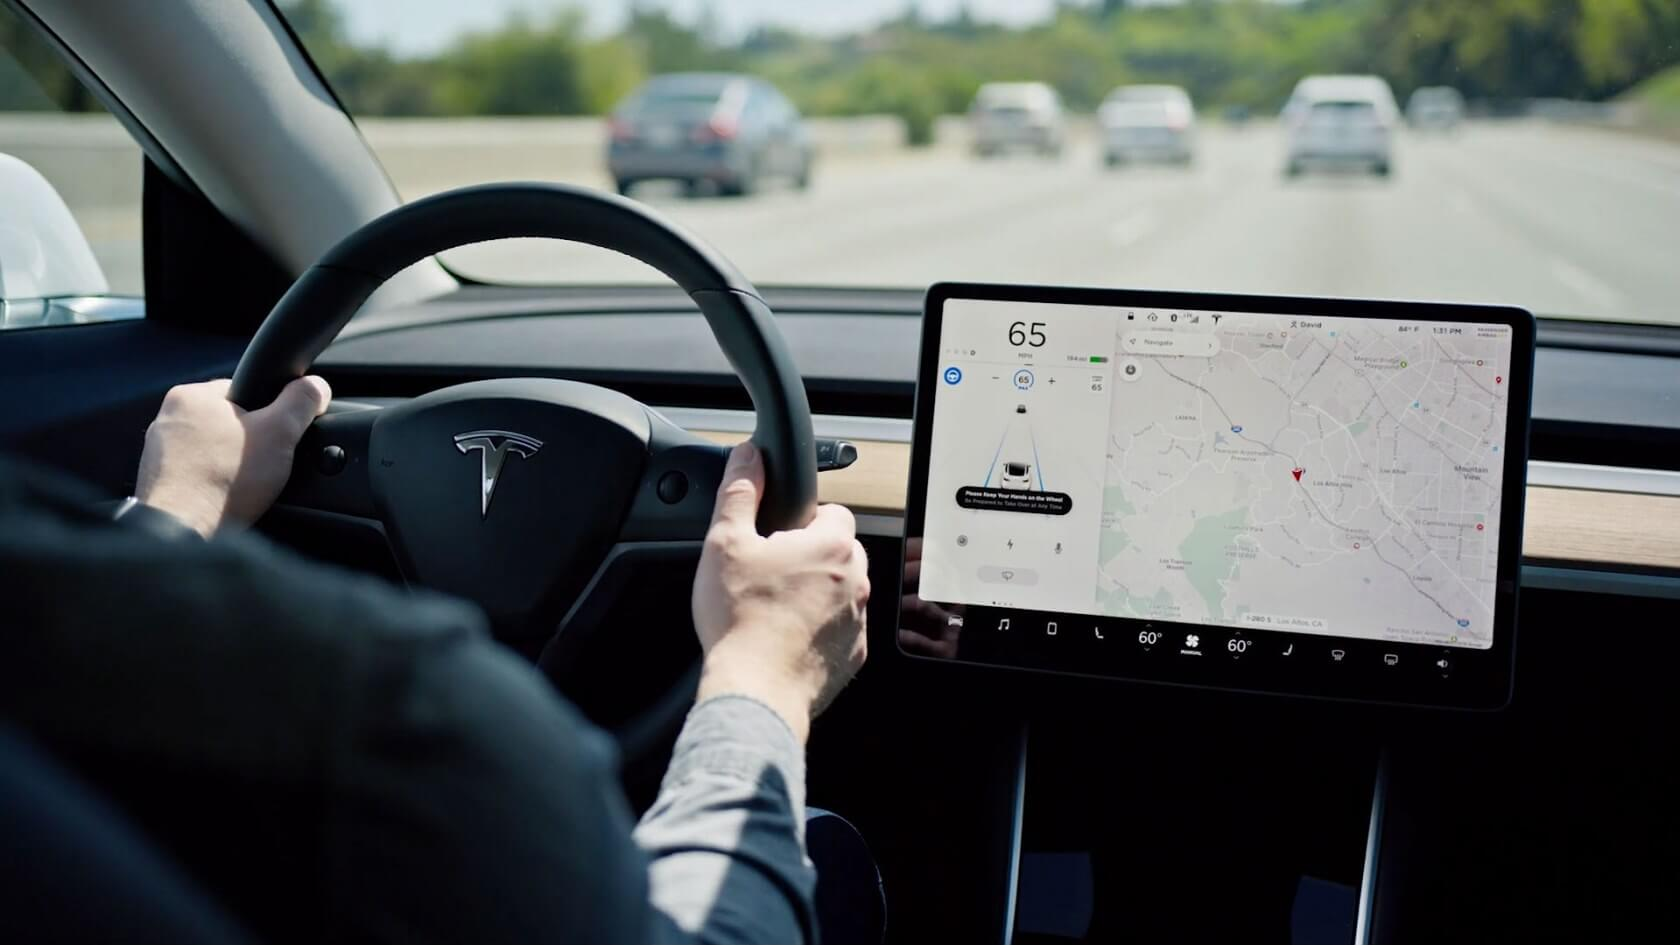 Tesla automatic lane-changing is far less competent than a human driver